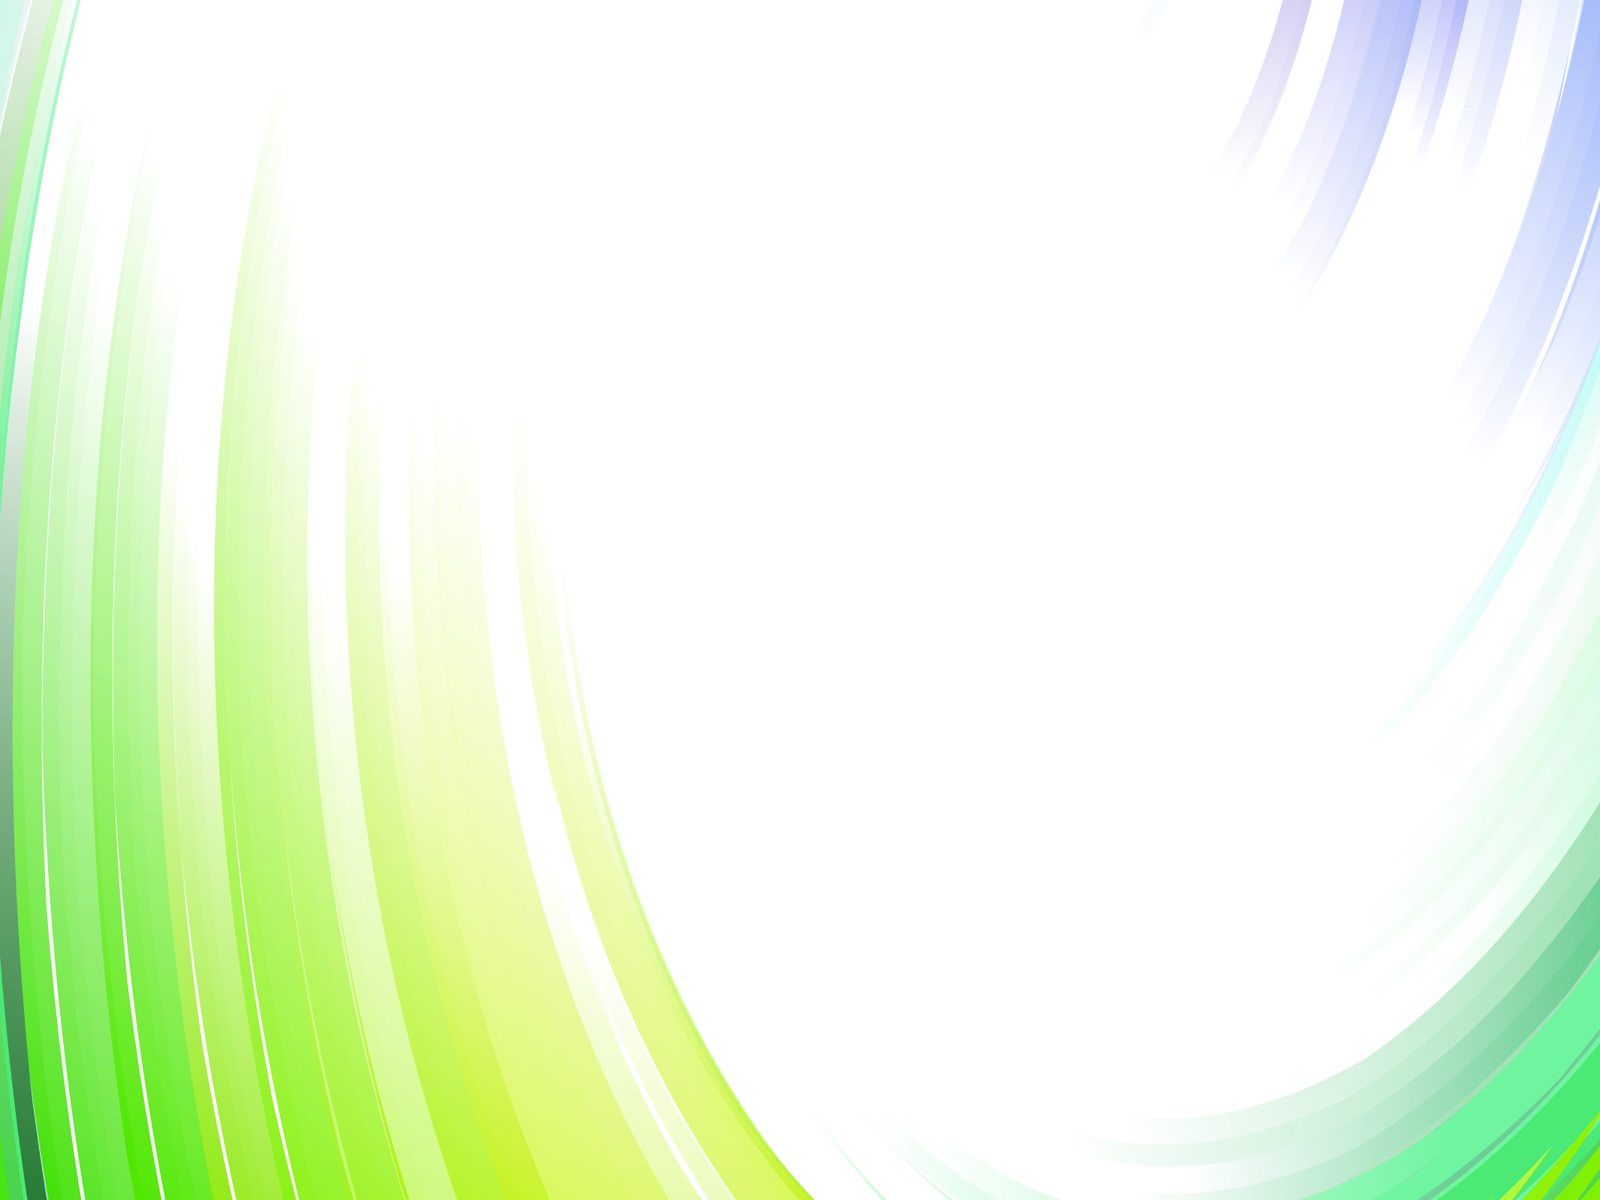 Corporative Green Waves Backgrounds Abstract Blue